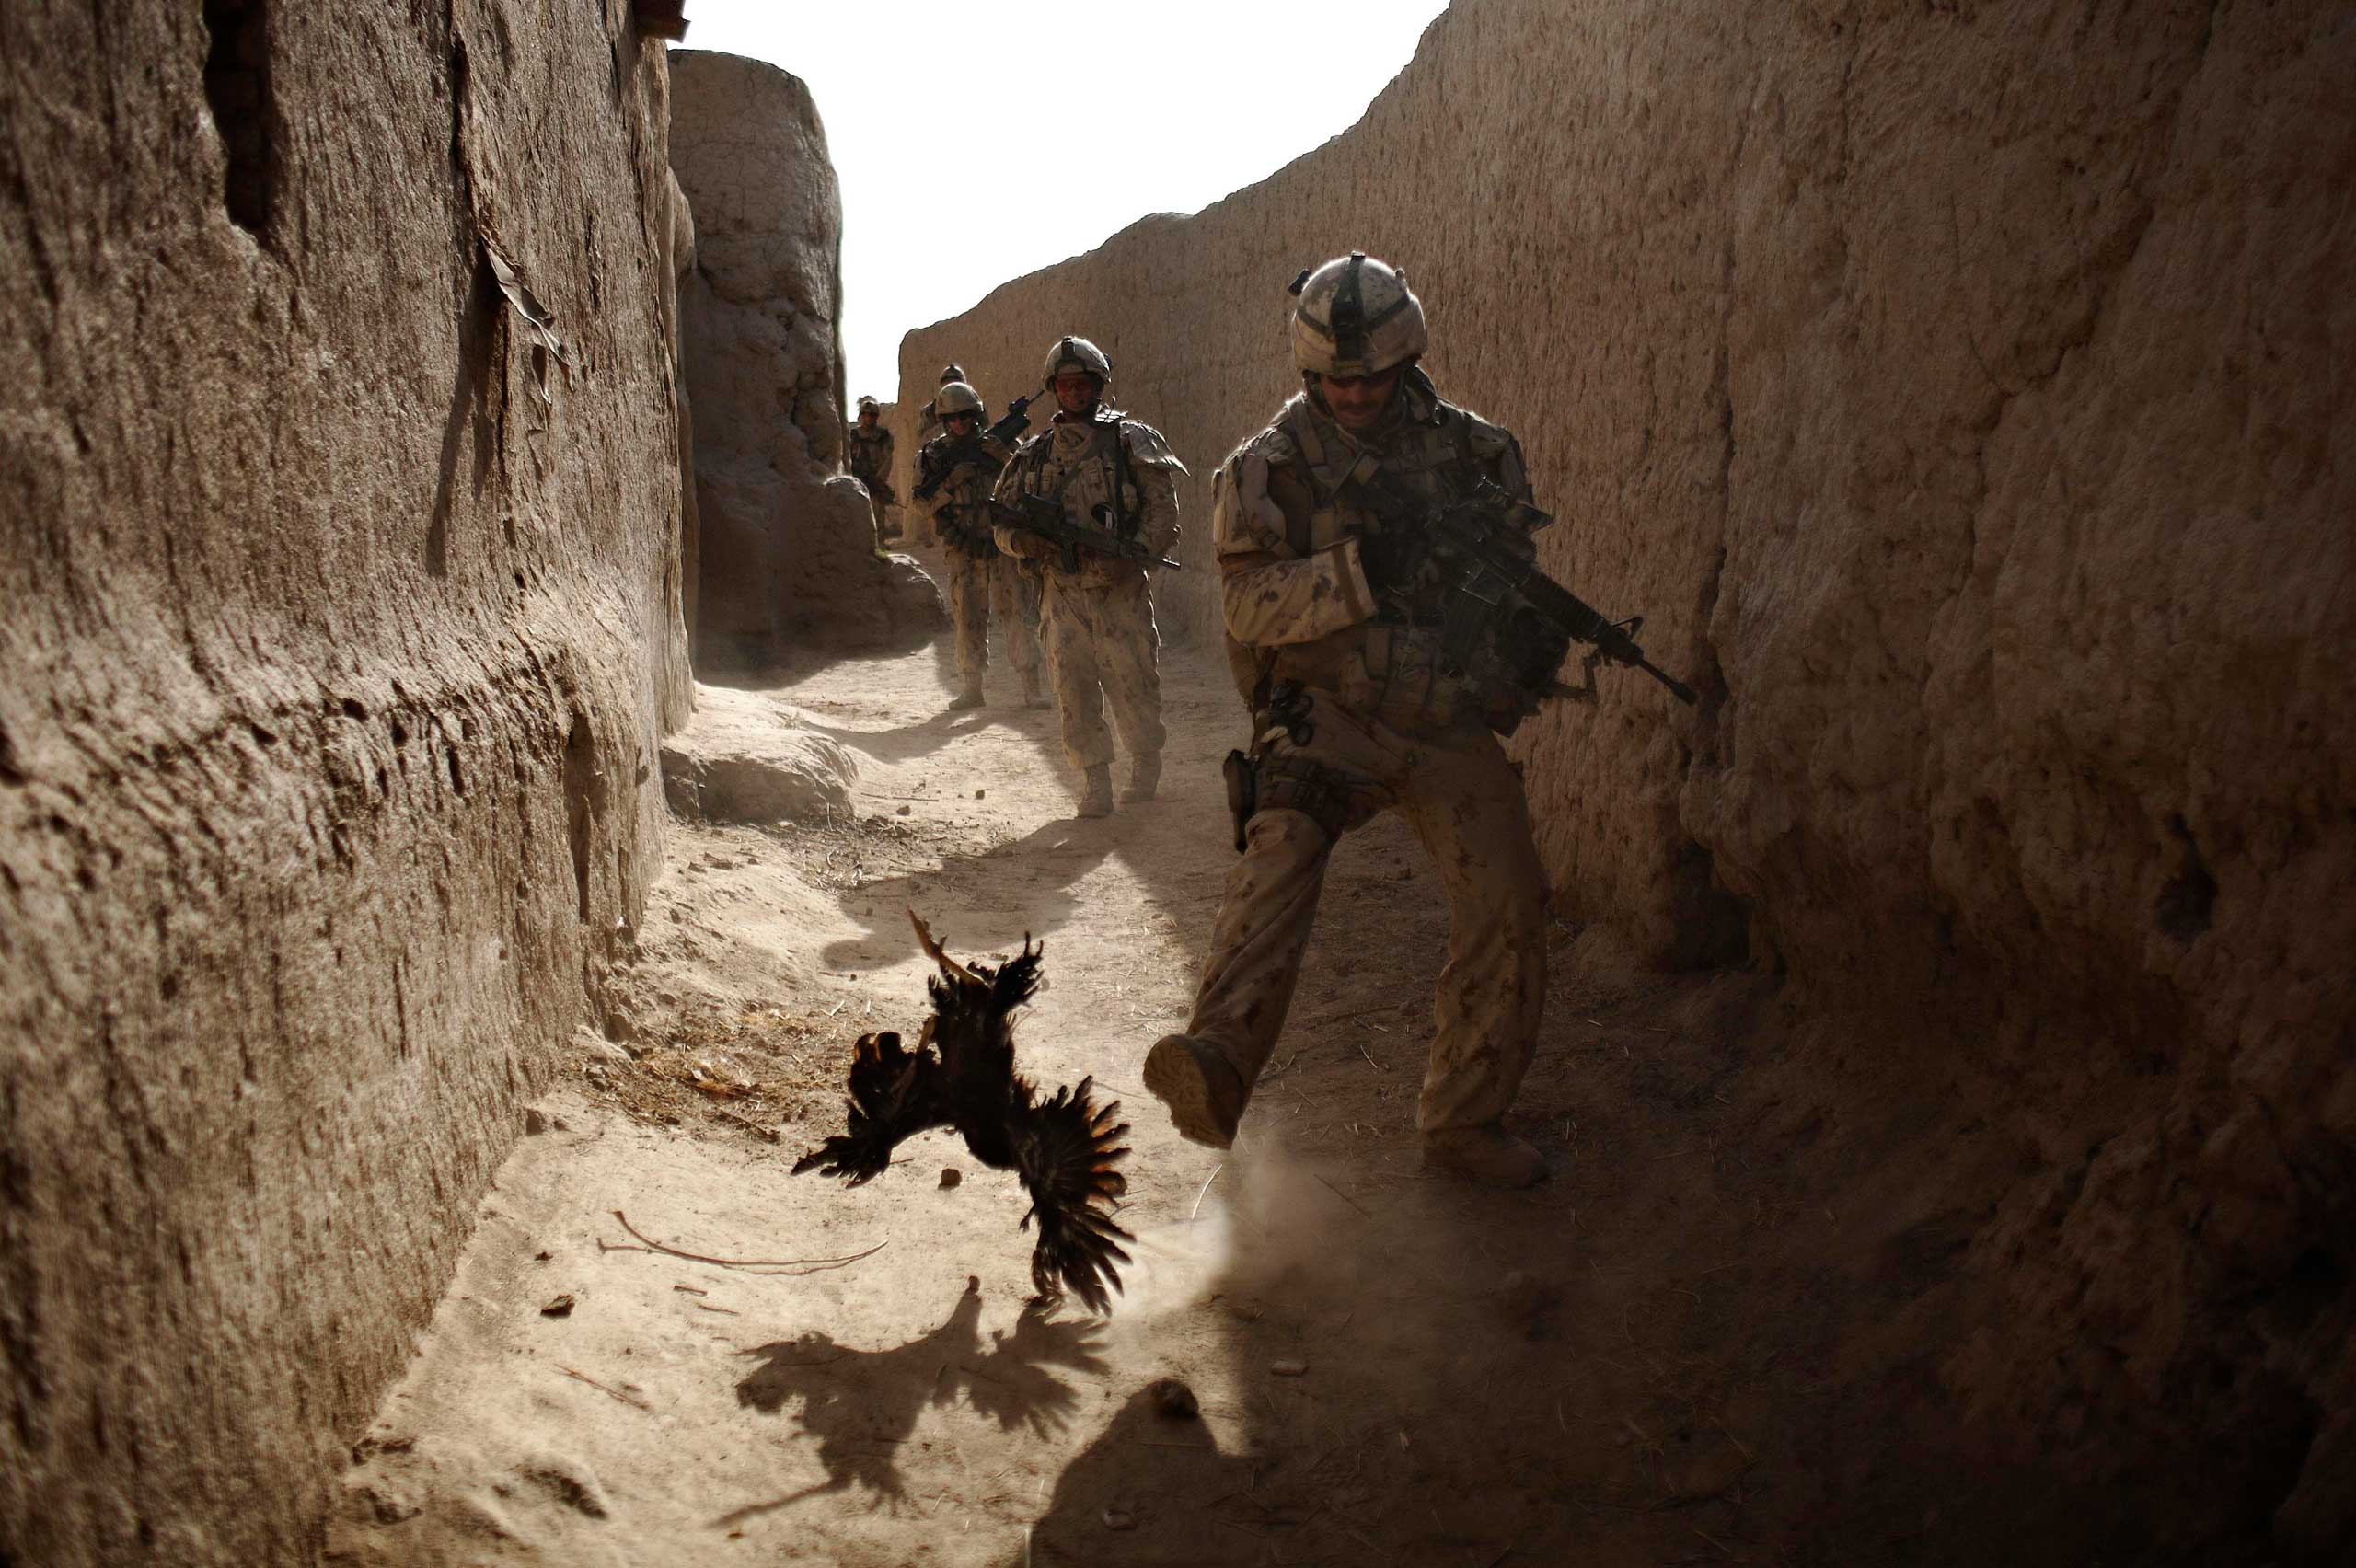 A Canadian soldier with the 1st RCR Battle Group, The Royal Canadian Regiment, chases a chicken seconds before he and his unit were attacked by grenades shot over the wall during a patrol in Salavat, southwest of Kandahar, Afghanistan, Sept. 11, 2010.